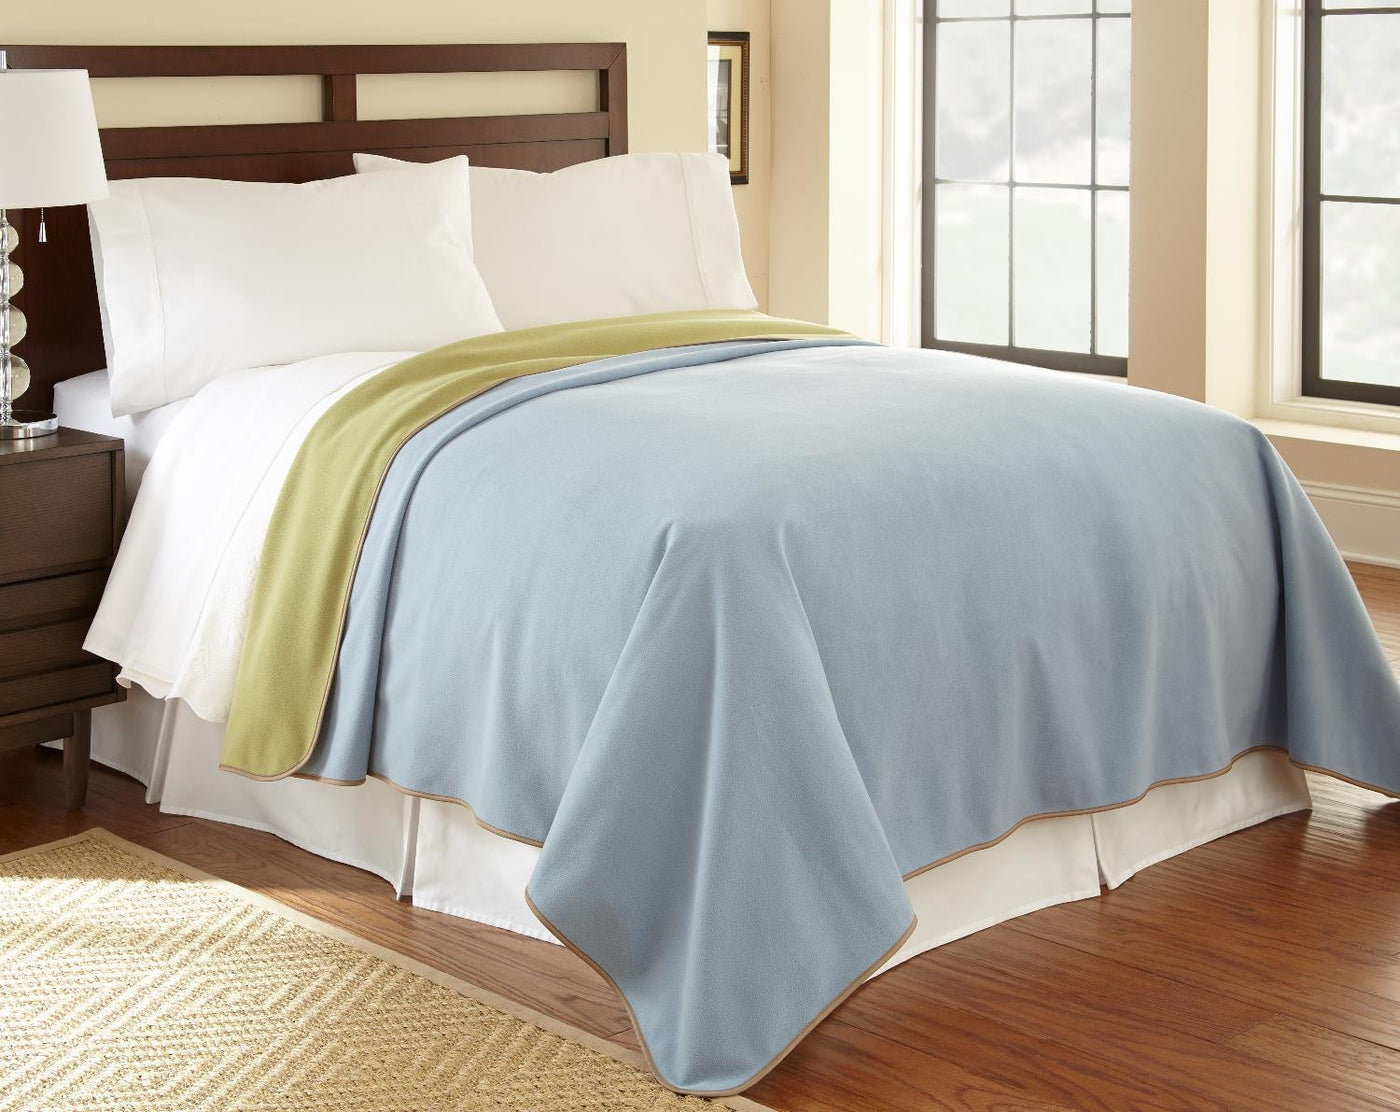 Skyblue bamboo waterproof fleece Mambe Furniture Cover